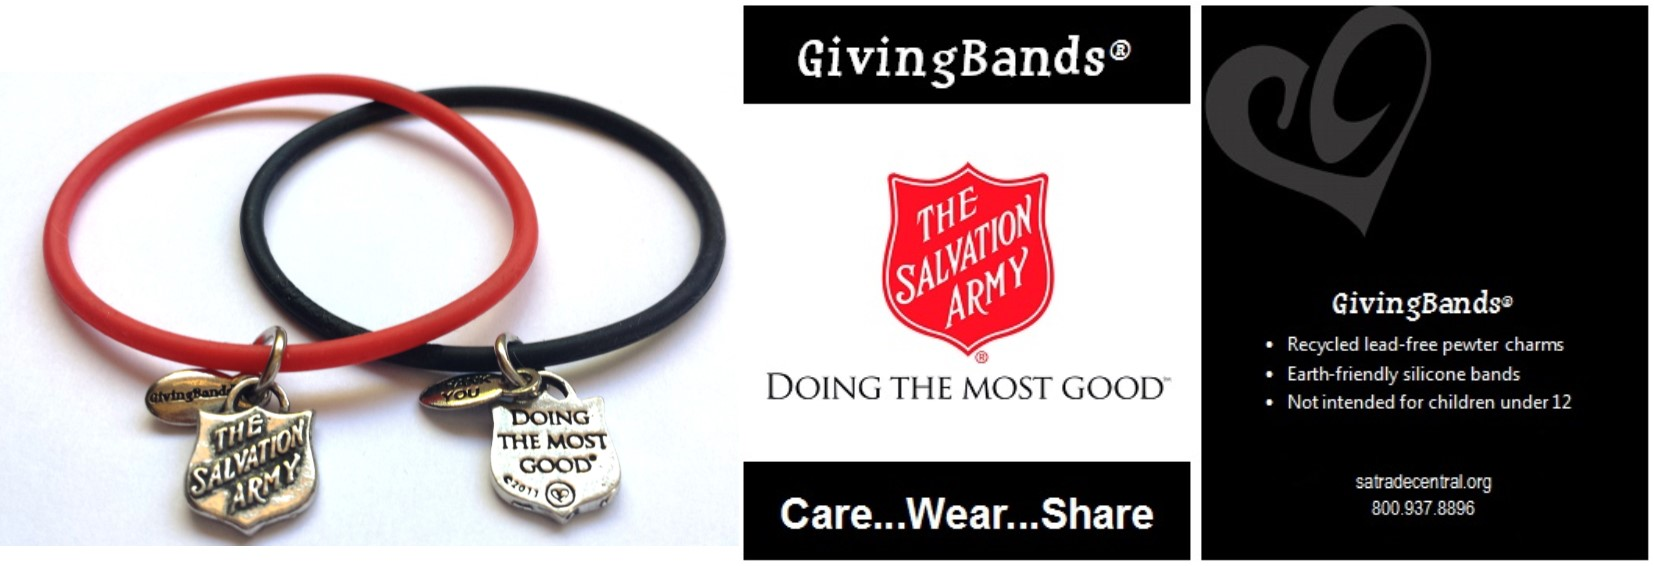 Salvation Army GivingBand and Carding